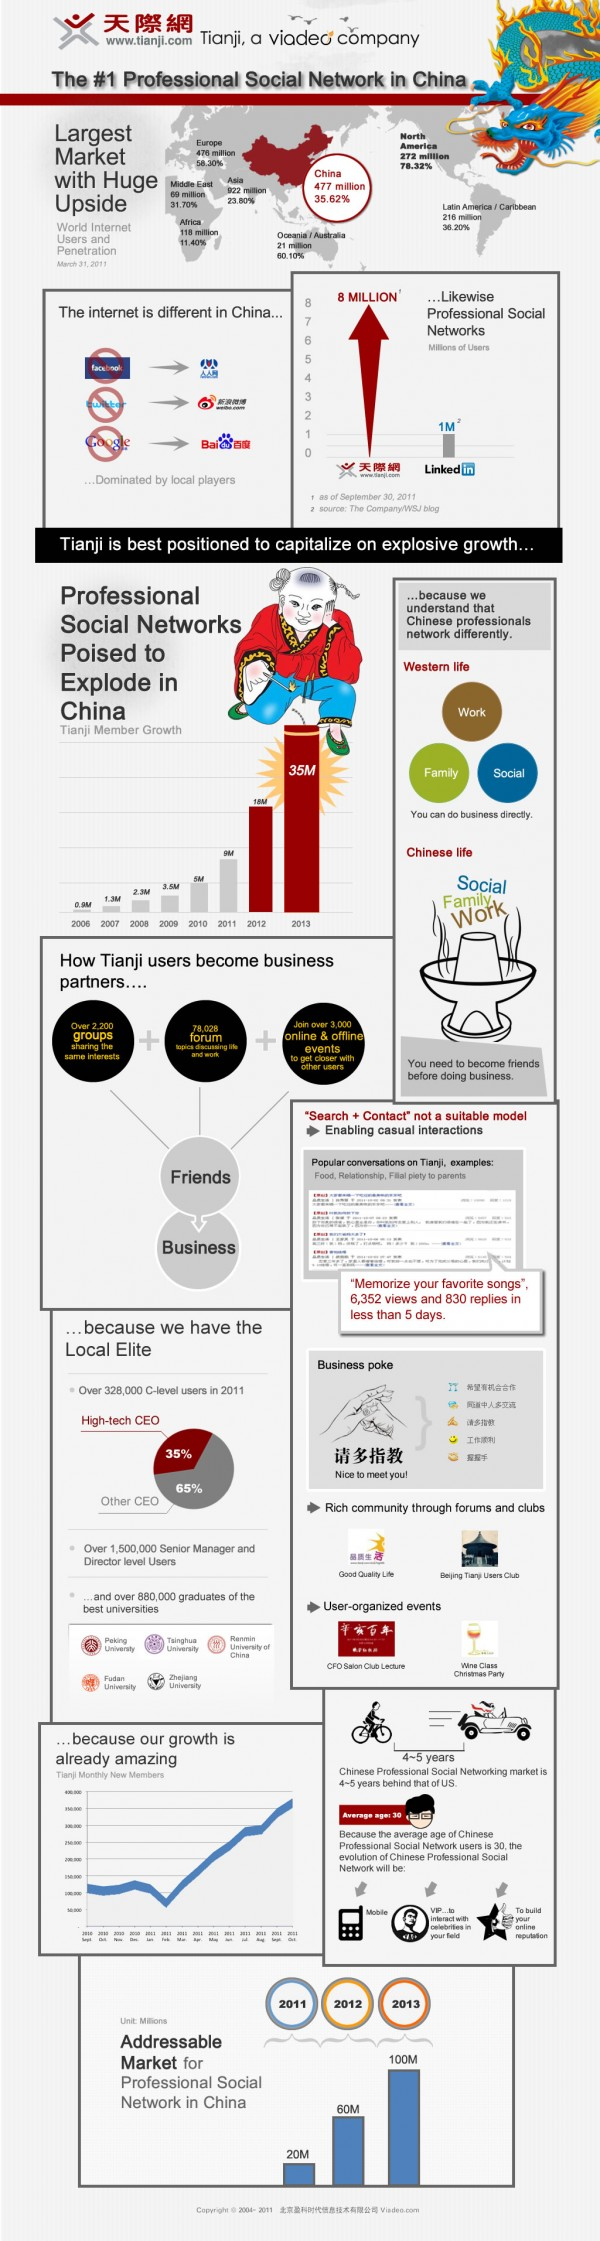 infographic china internet tianji1 Business social networks tipped to grow 500% in China by 2013 [Infographic]